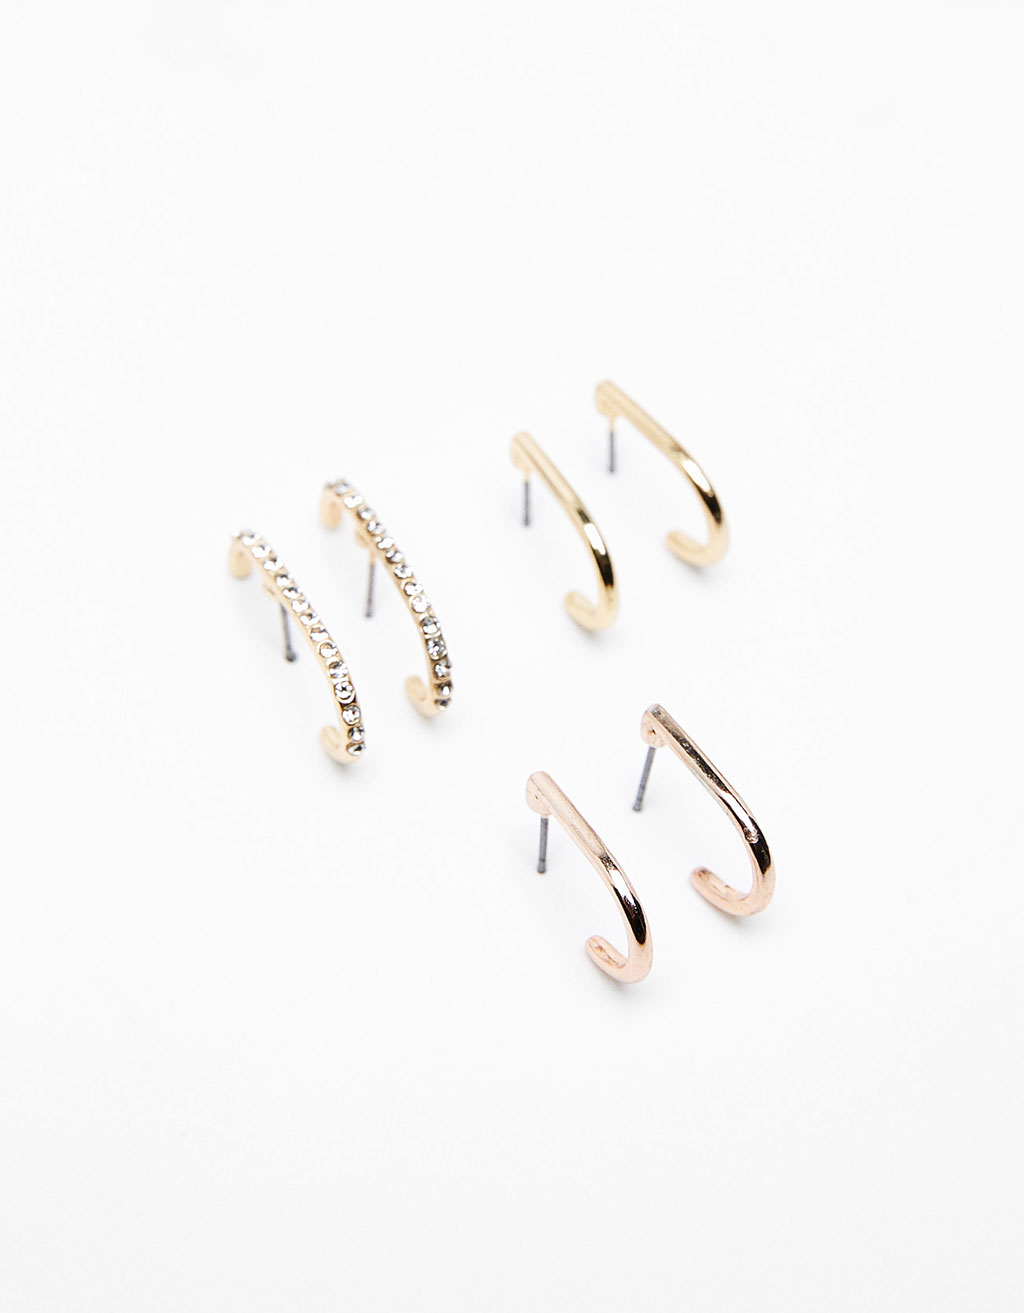 Set of 3 minimalist ear cuffs